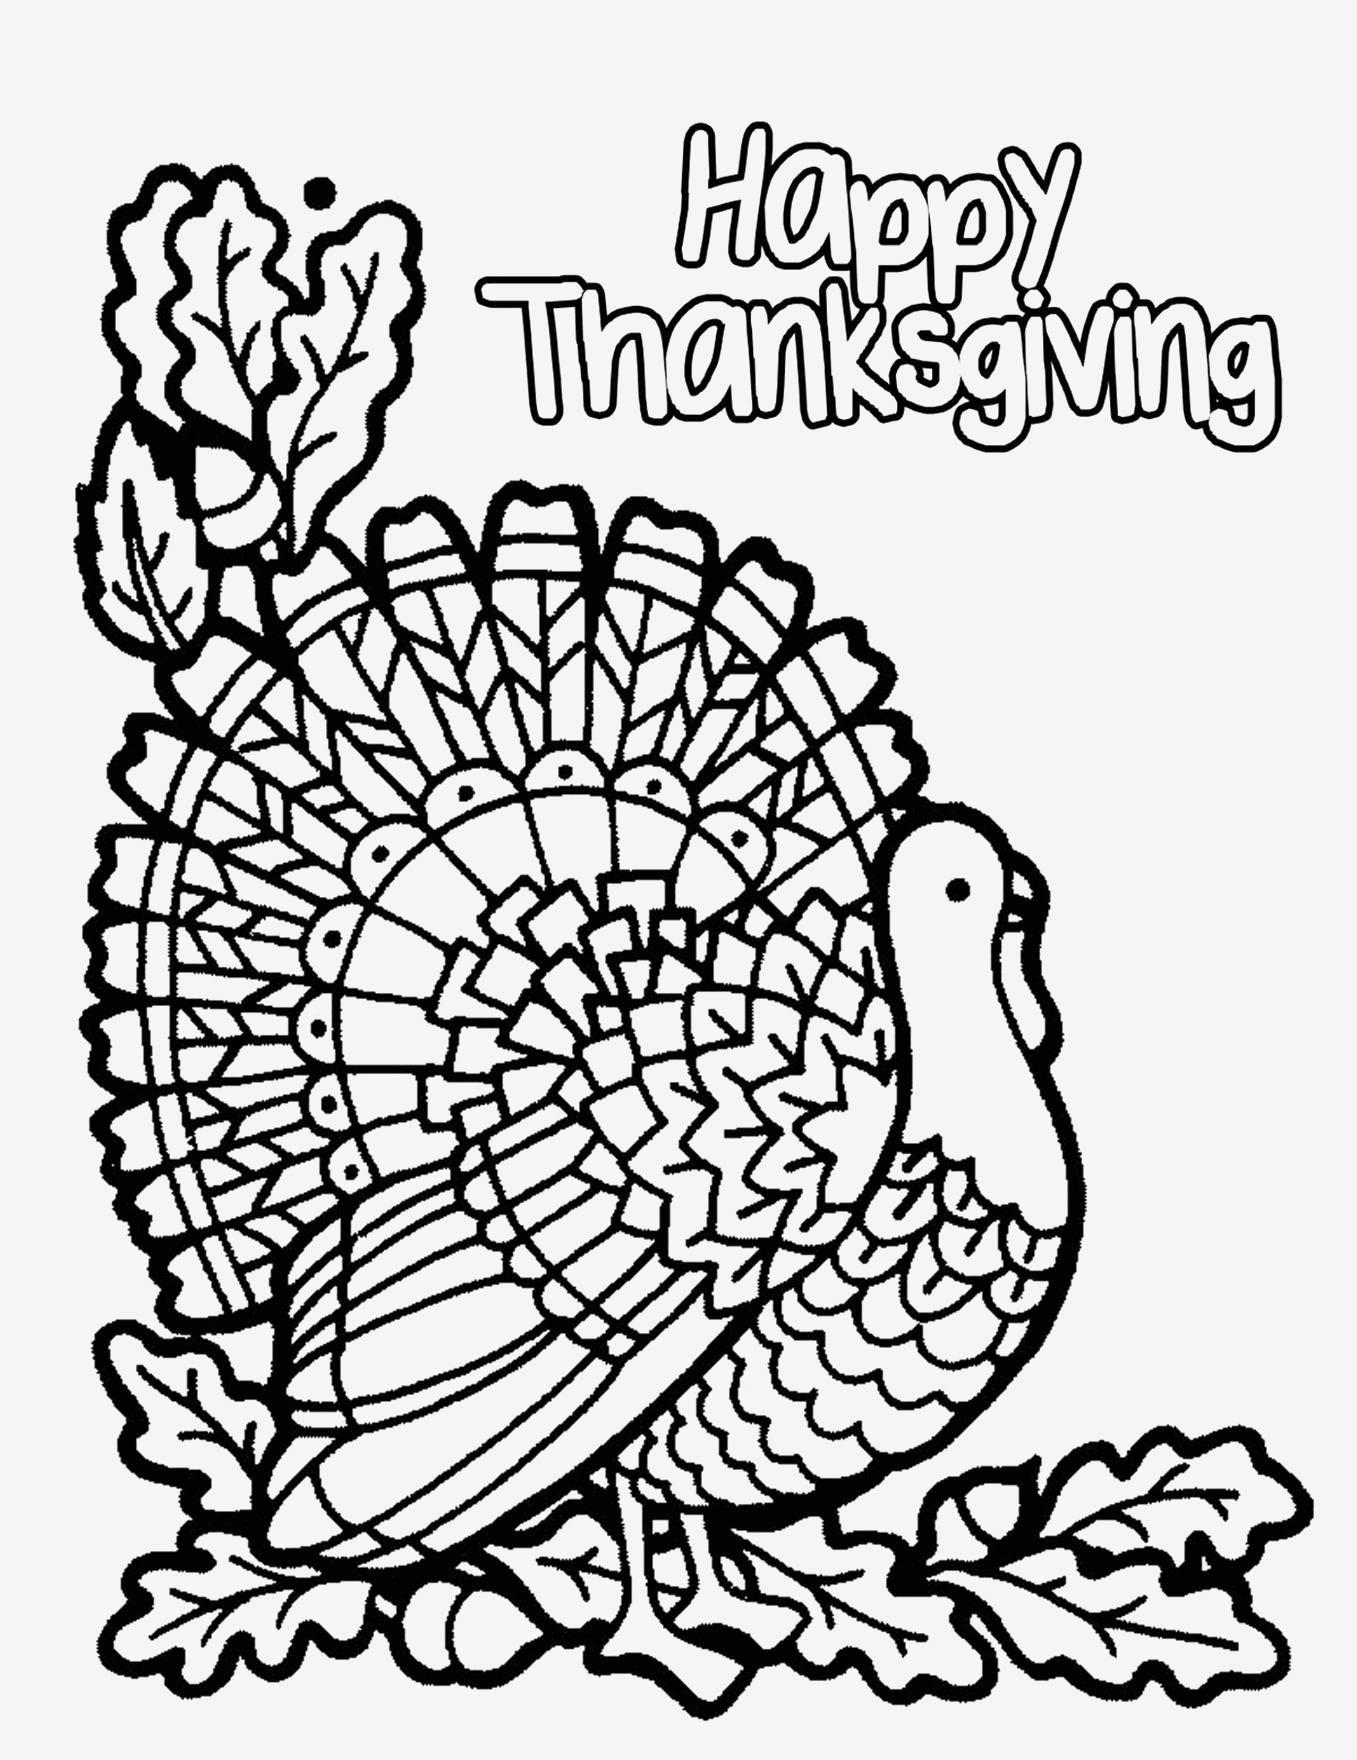 thanksgiving coloring pages free download Download-Free Printable Thanksgiving Coloring Pages top Free Printable Thanksgiving Coloring Page Beautiful Thanksgiving Coloring Pages 20-c